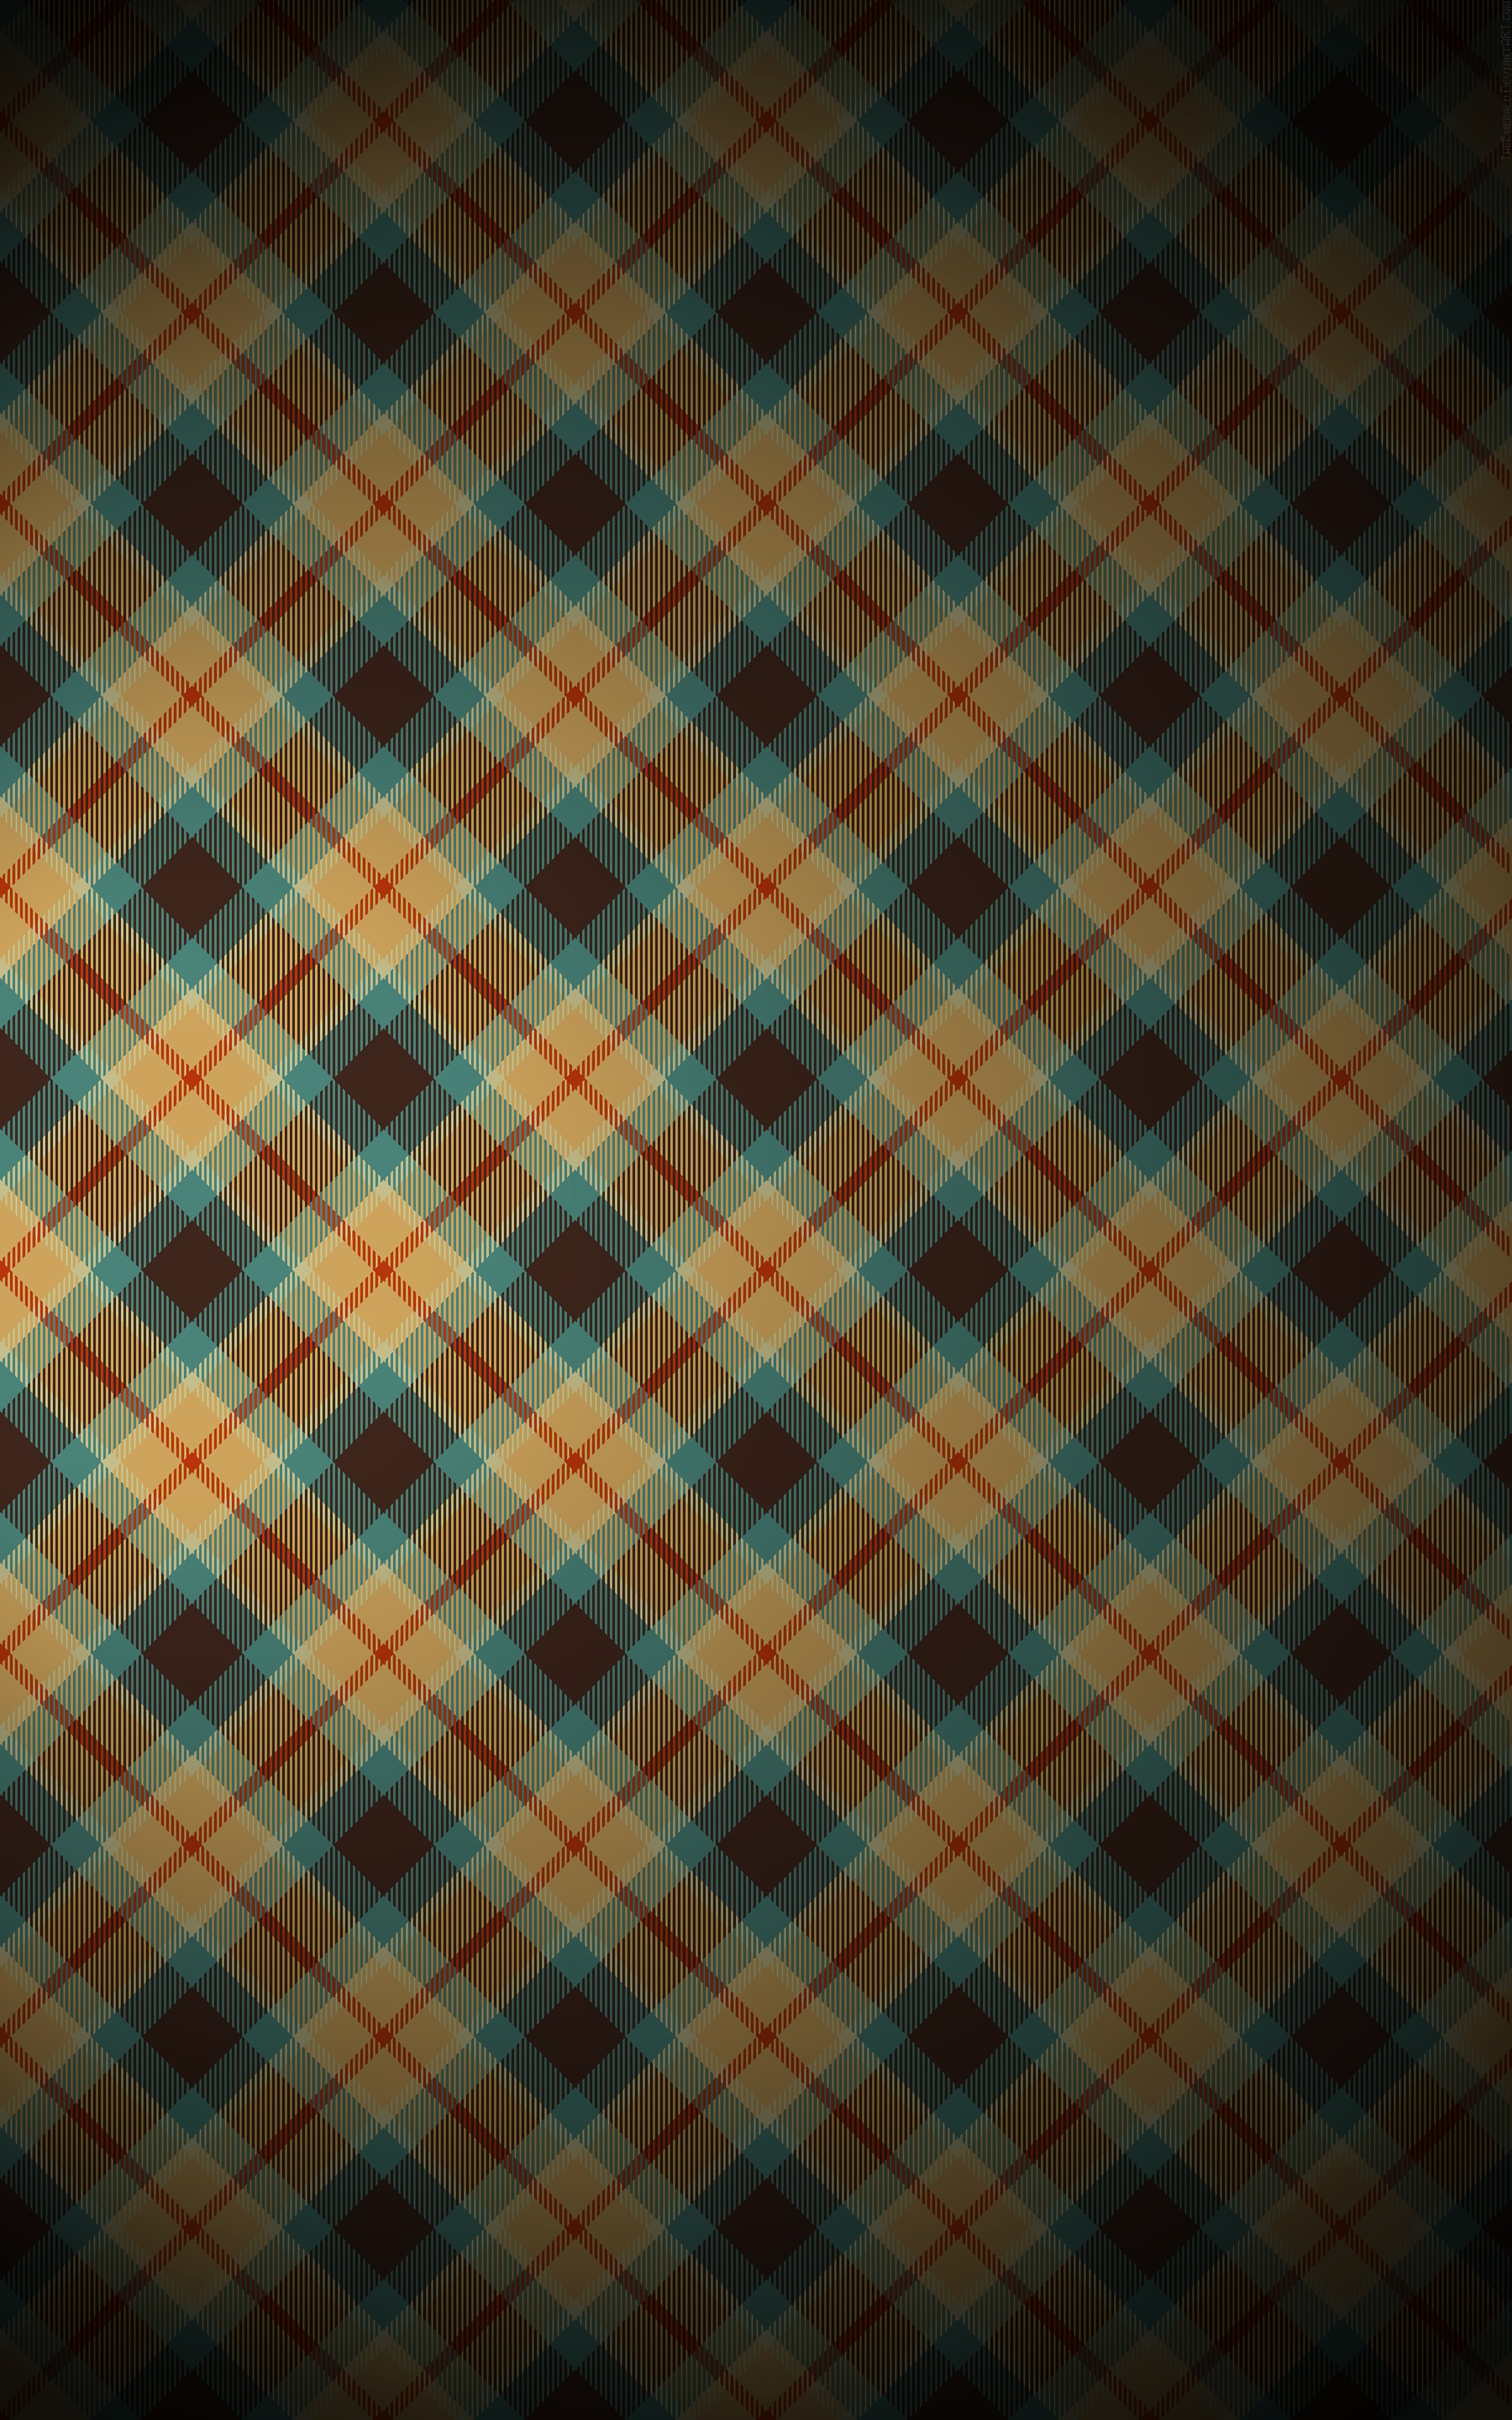 114903 download wallpaper Textures, Texture, Lines, Obliquely, Stripes, Streaks, Patterns screensavers and pictures for free